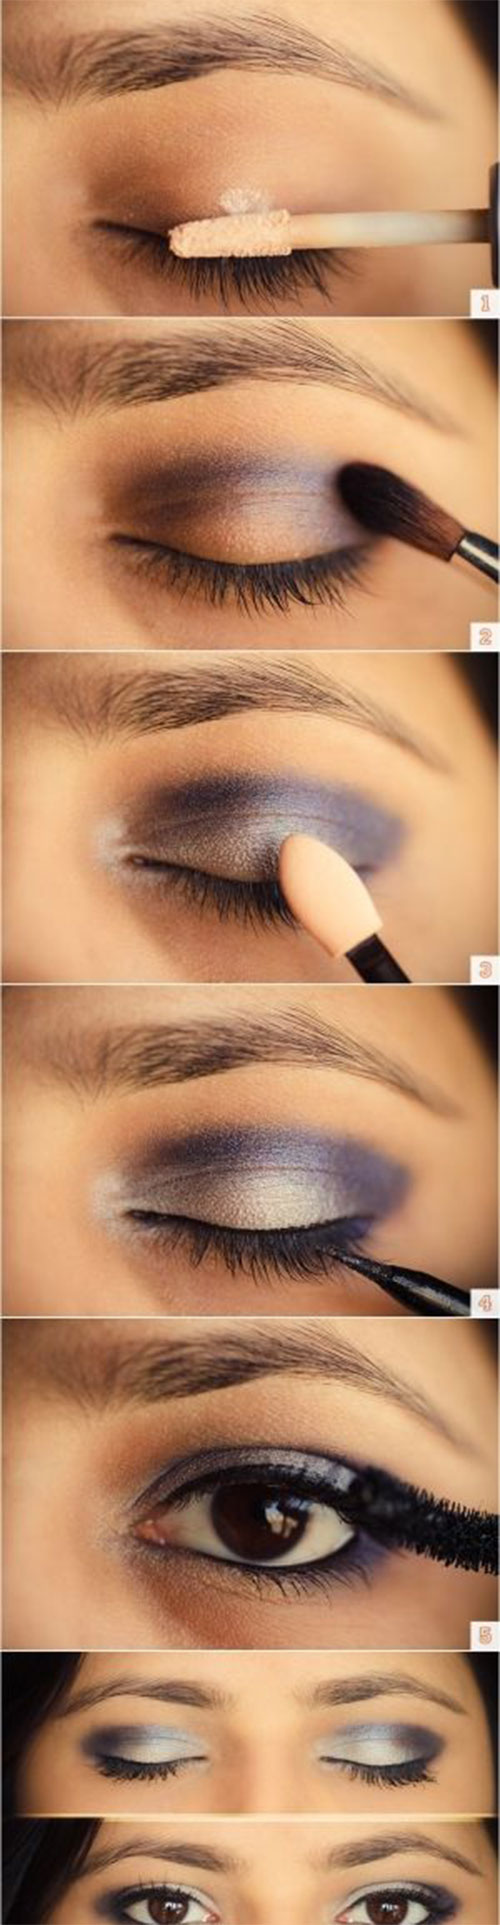 20-Happy-New-Year-Eve-Eye-Makeup-Tutorial-2015-11